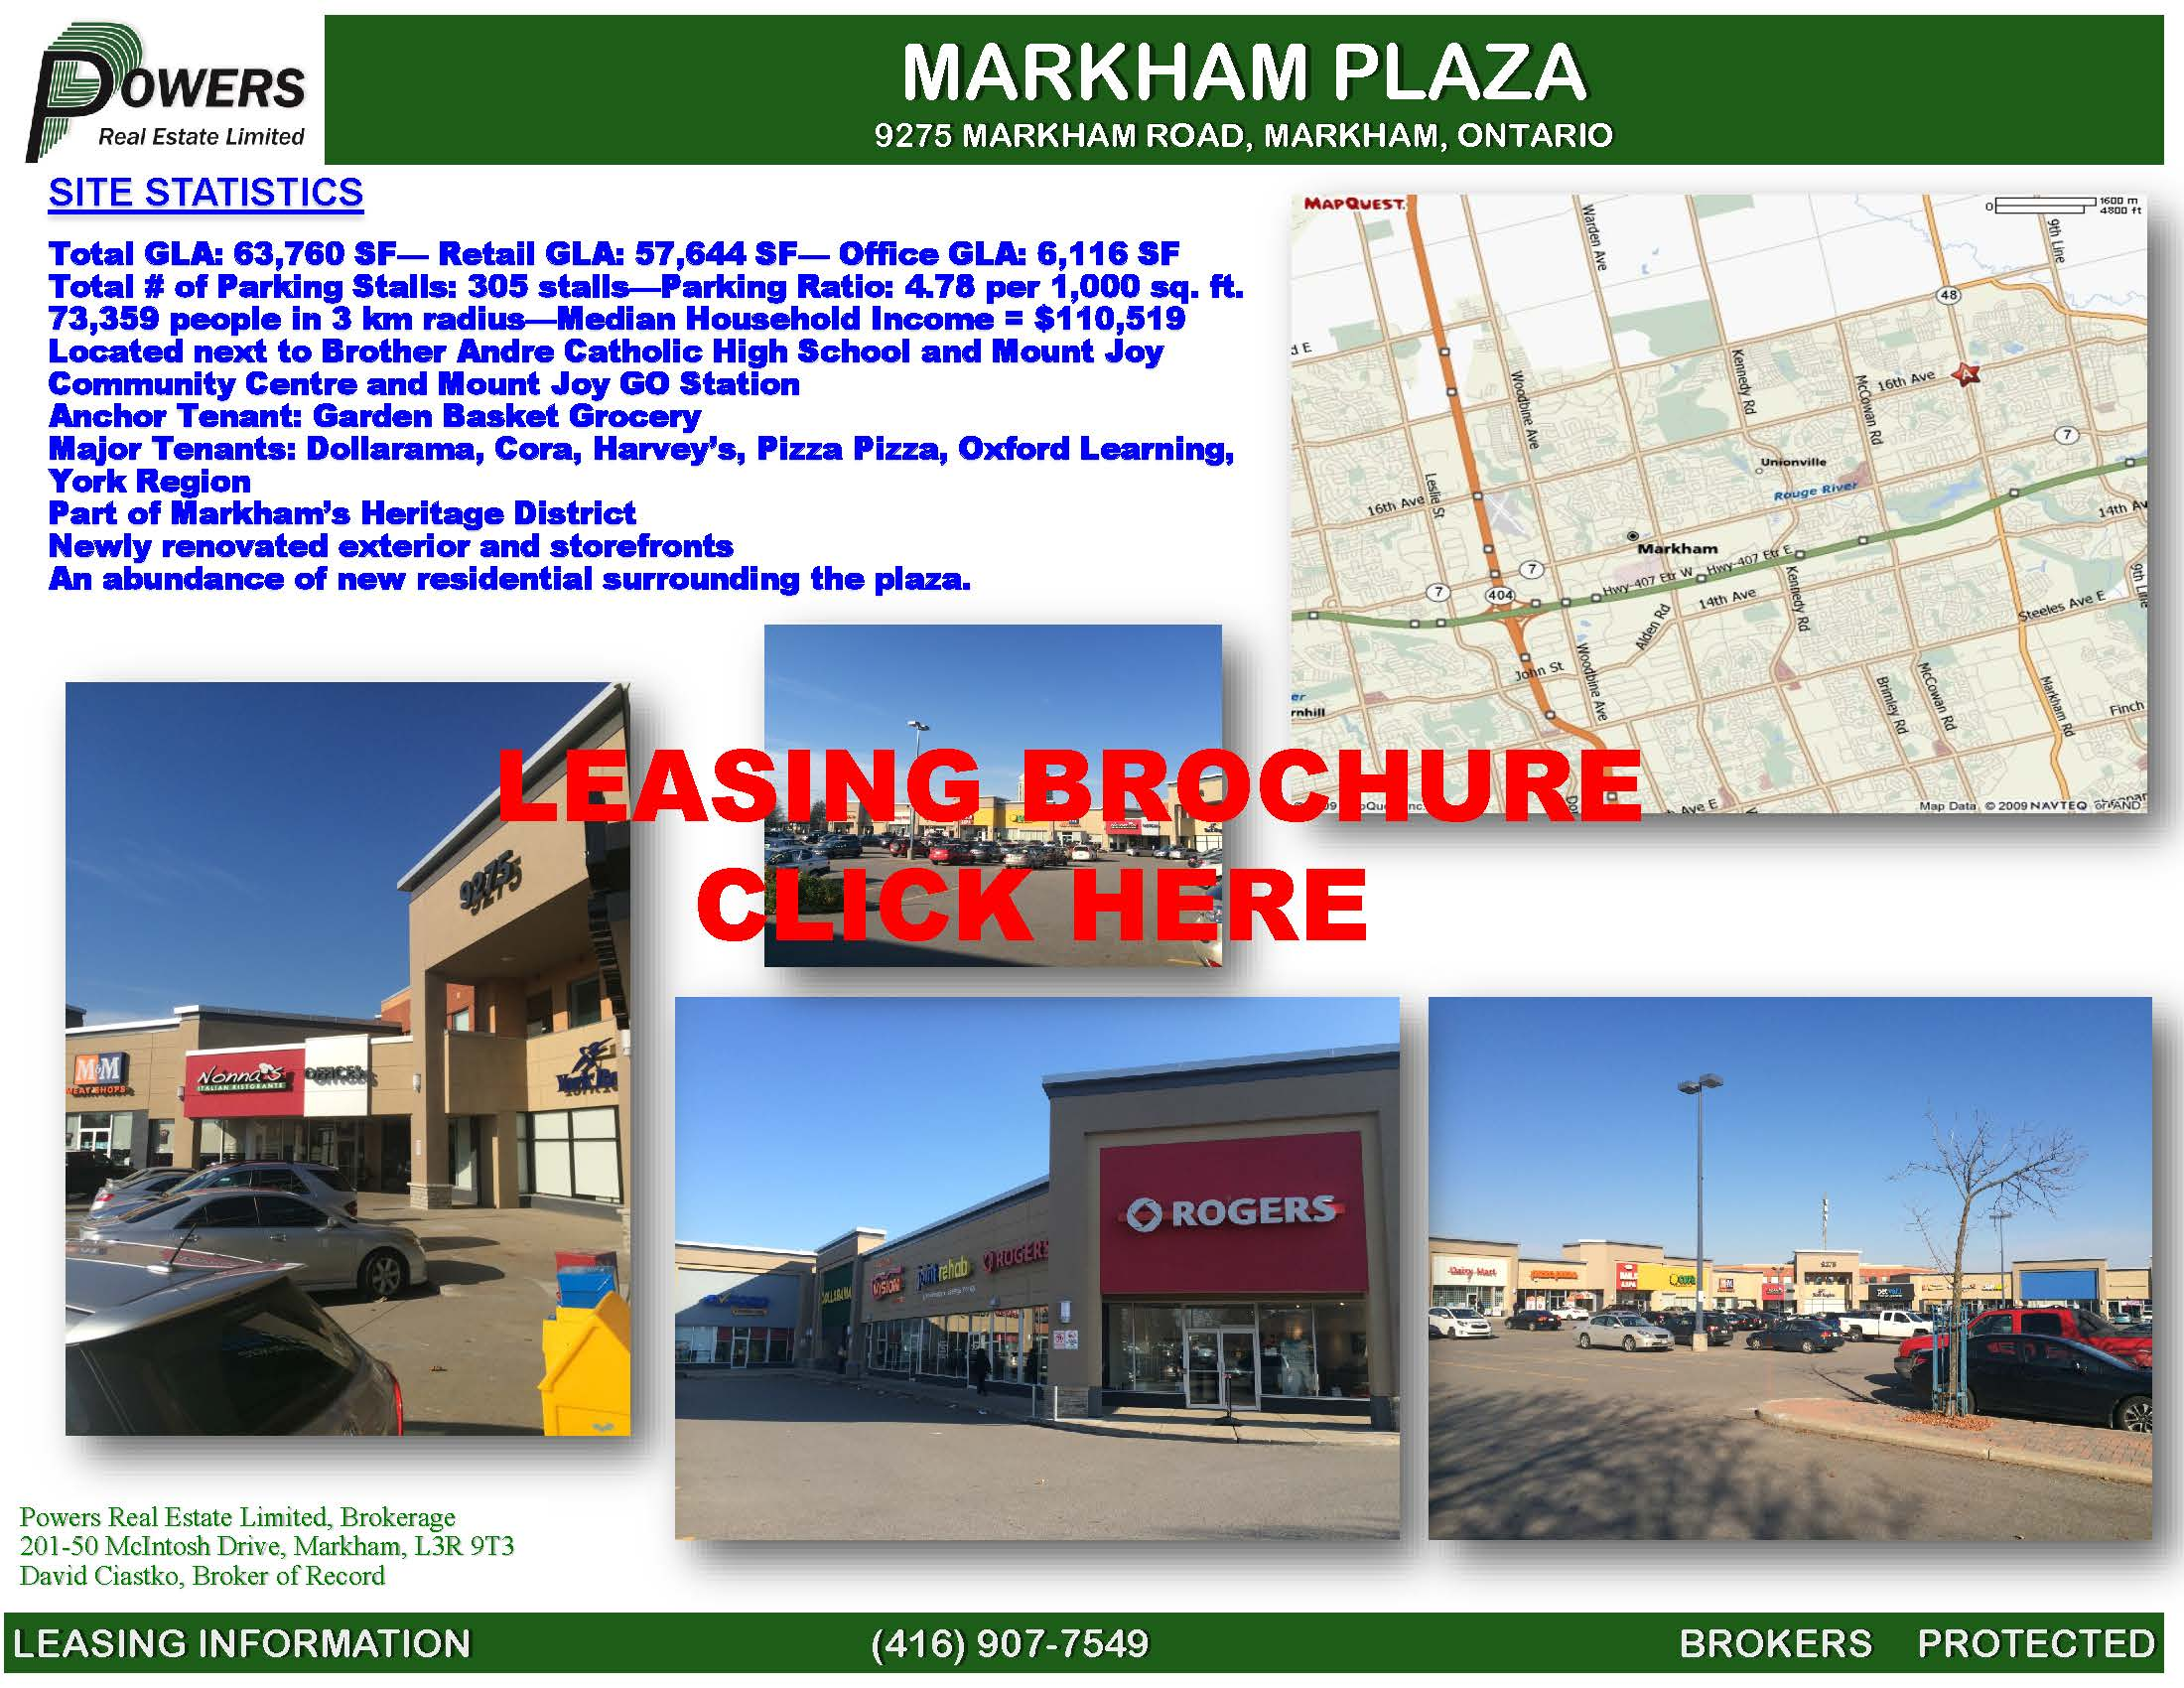 Pages from Markham Plaza Marketing Brochure - Unit 1D  3